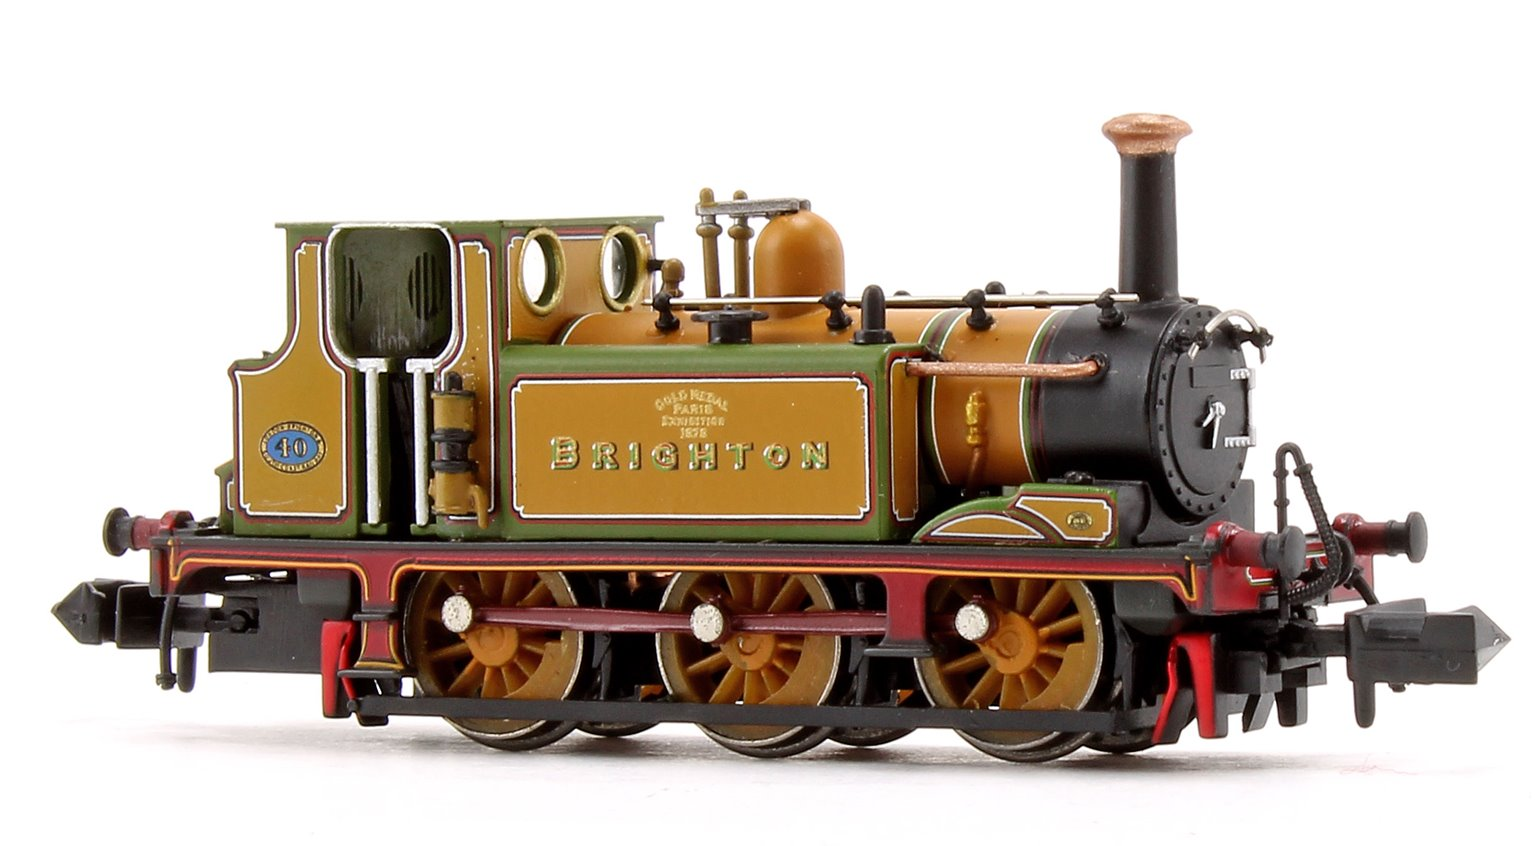 Terrier A1 'Brighton Gold' LBSC Stroudley Improved Green Locomotive